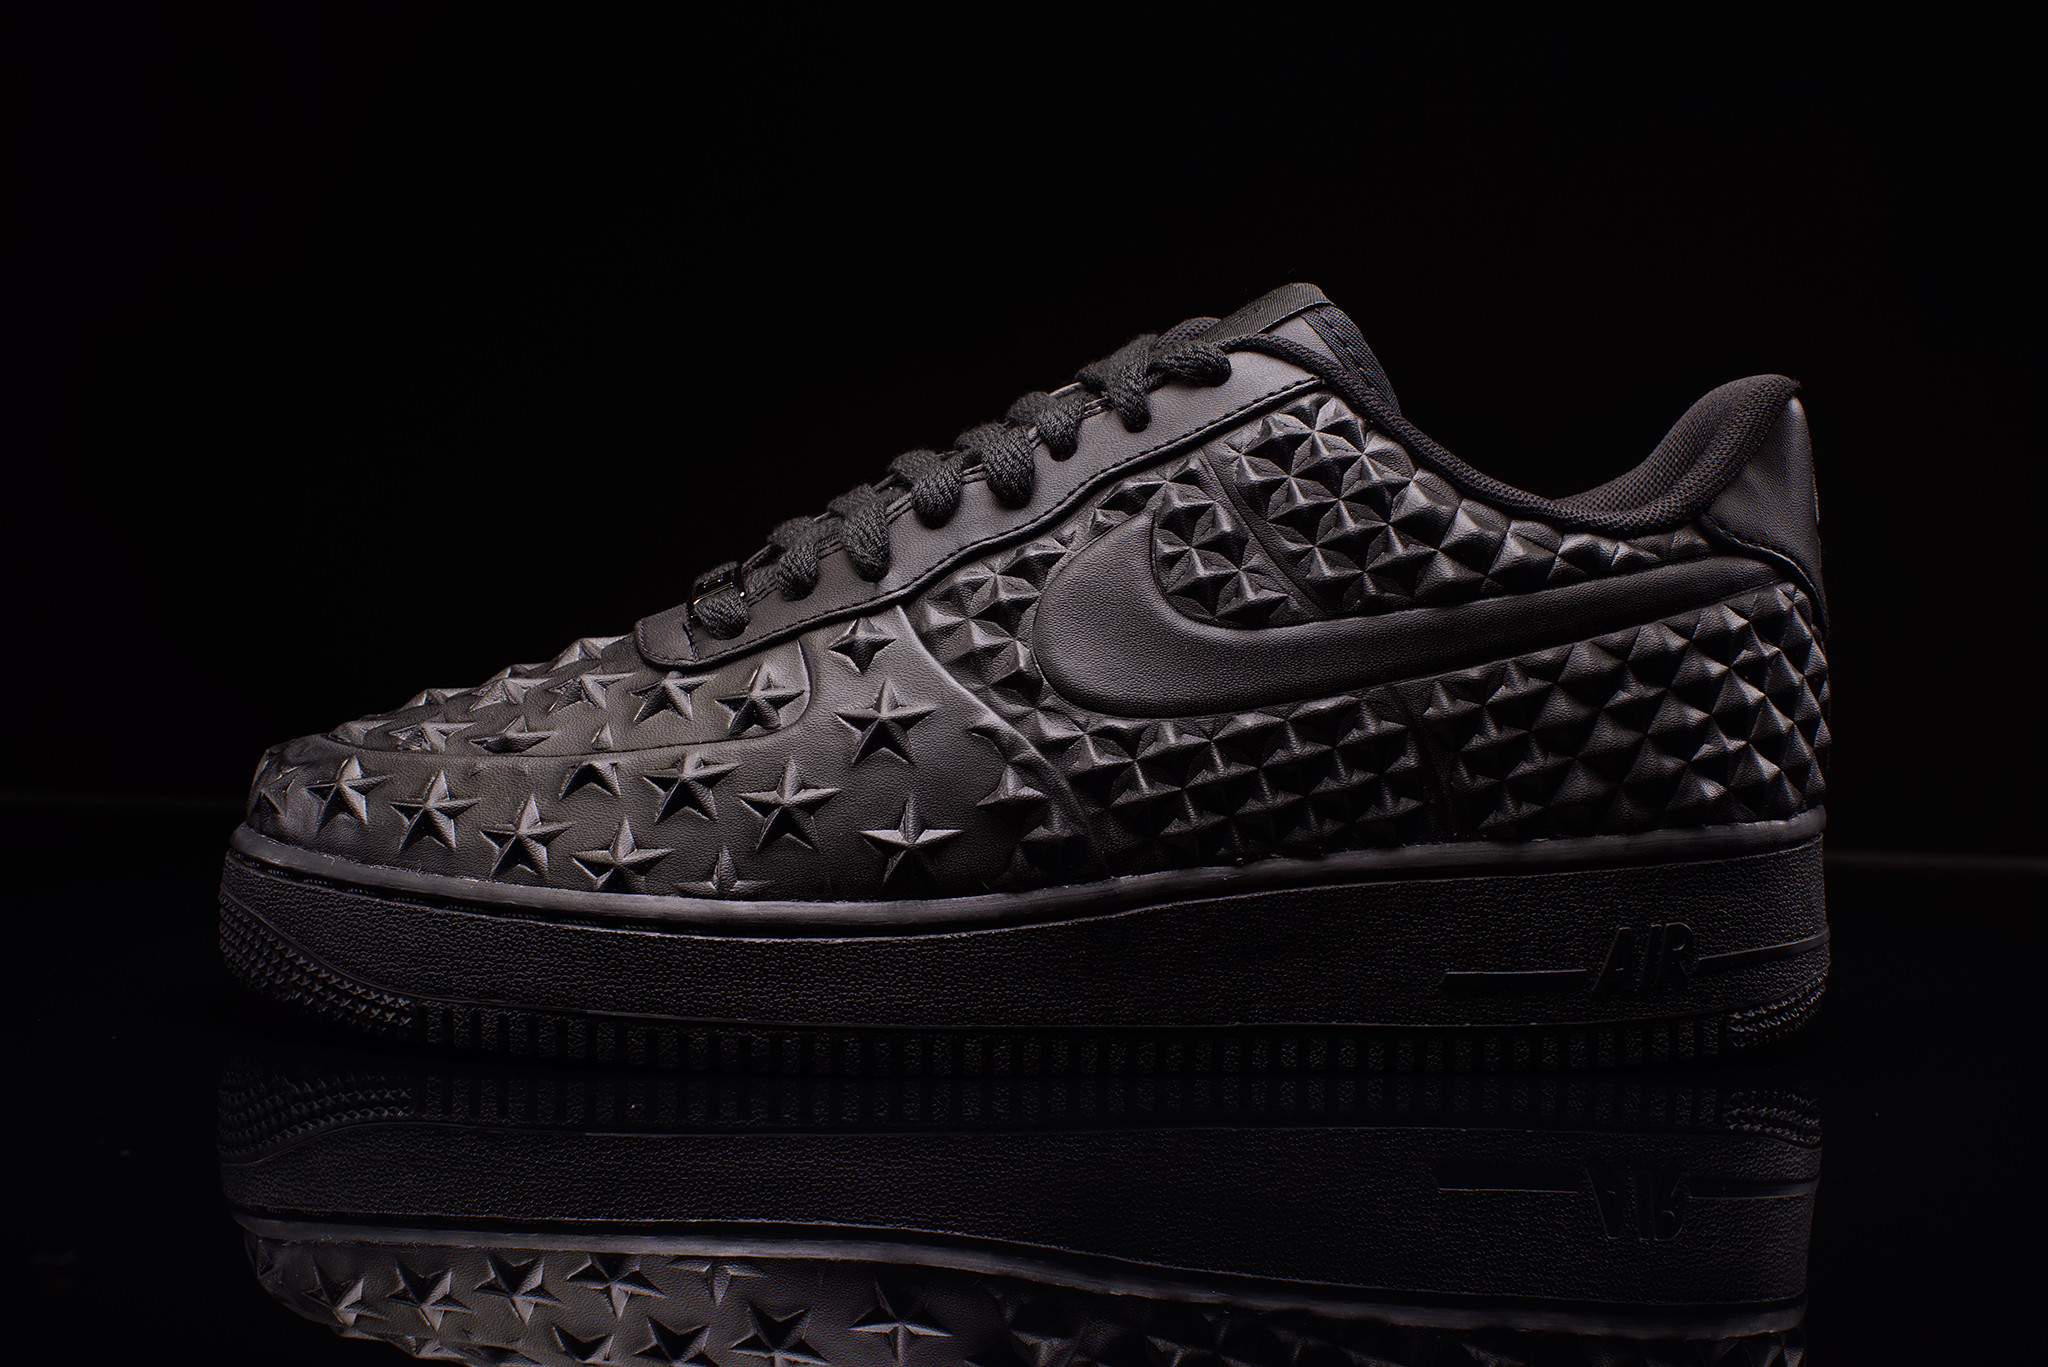 Nike air force 1 lv8 vt black available sneakers addict